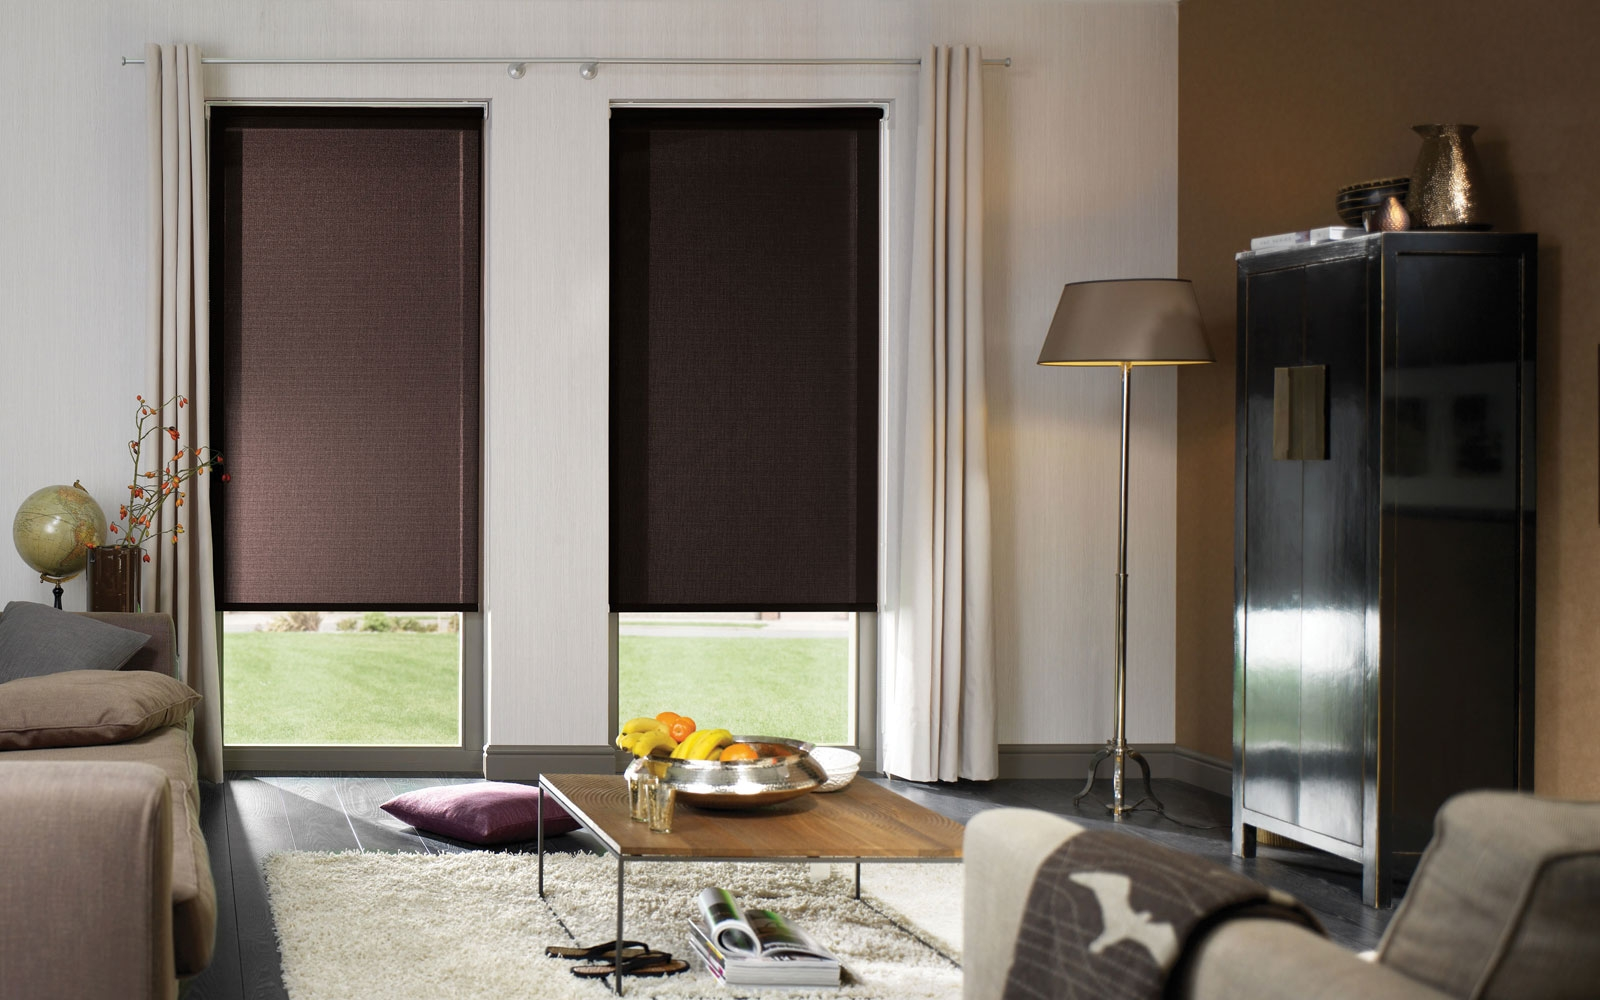 Make It Darker With Black Out Roman Blinds Decorifusta Pertaining To Blackout Roman Blind (View 2 of 15)